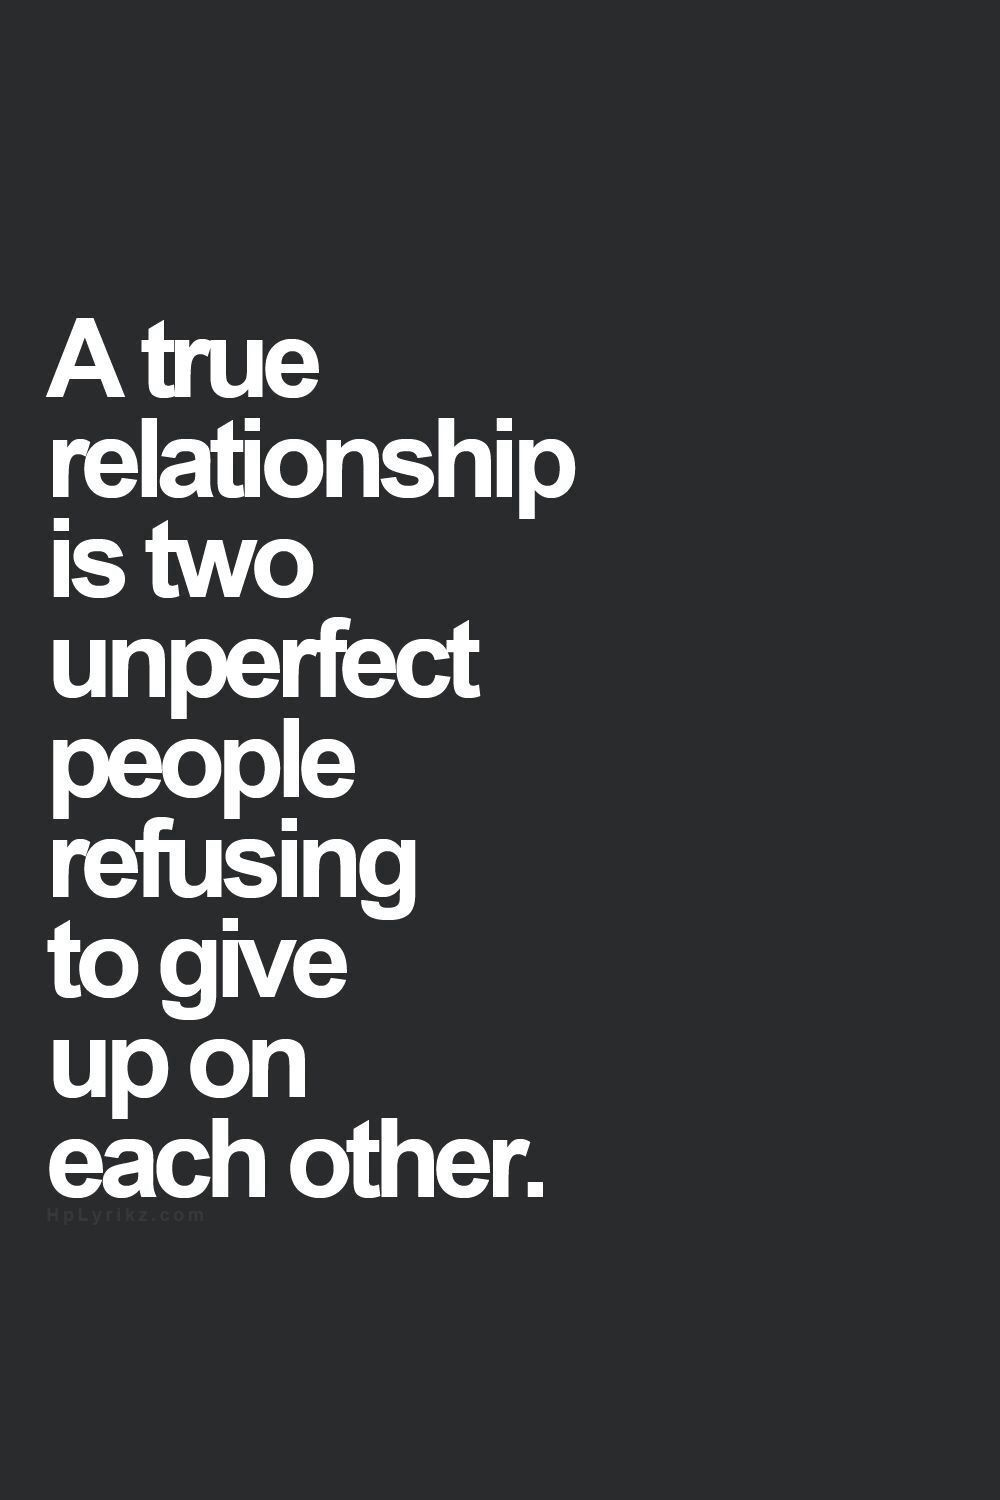 Quote About Relationships 26 Inspirational Love Quotes And Sayings For Her  Relationship